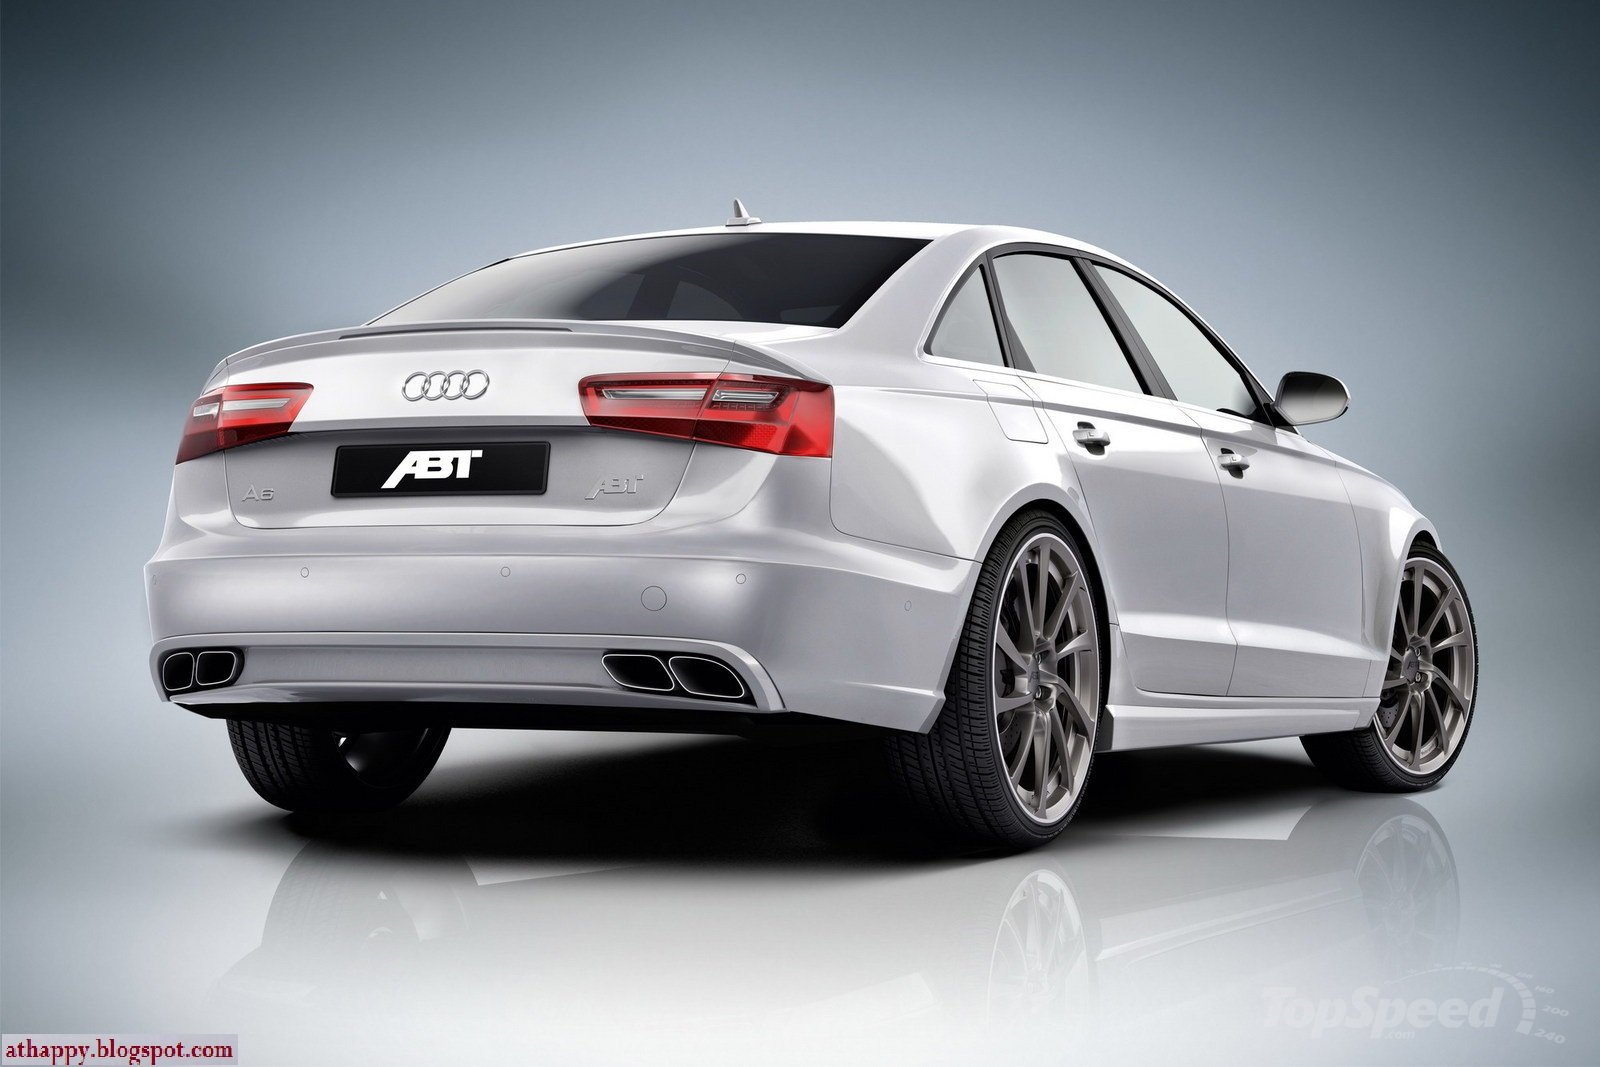 2004 Abt Audi As6 All Types Of Car Wallpapers